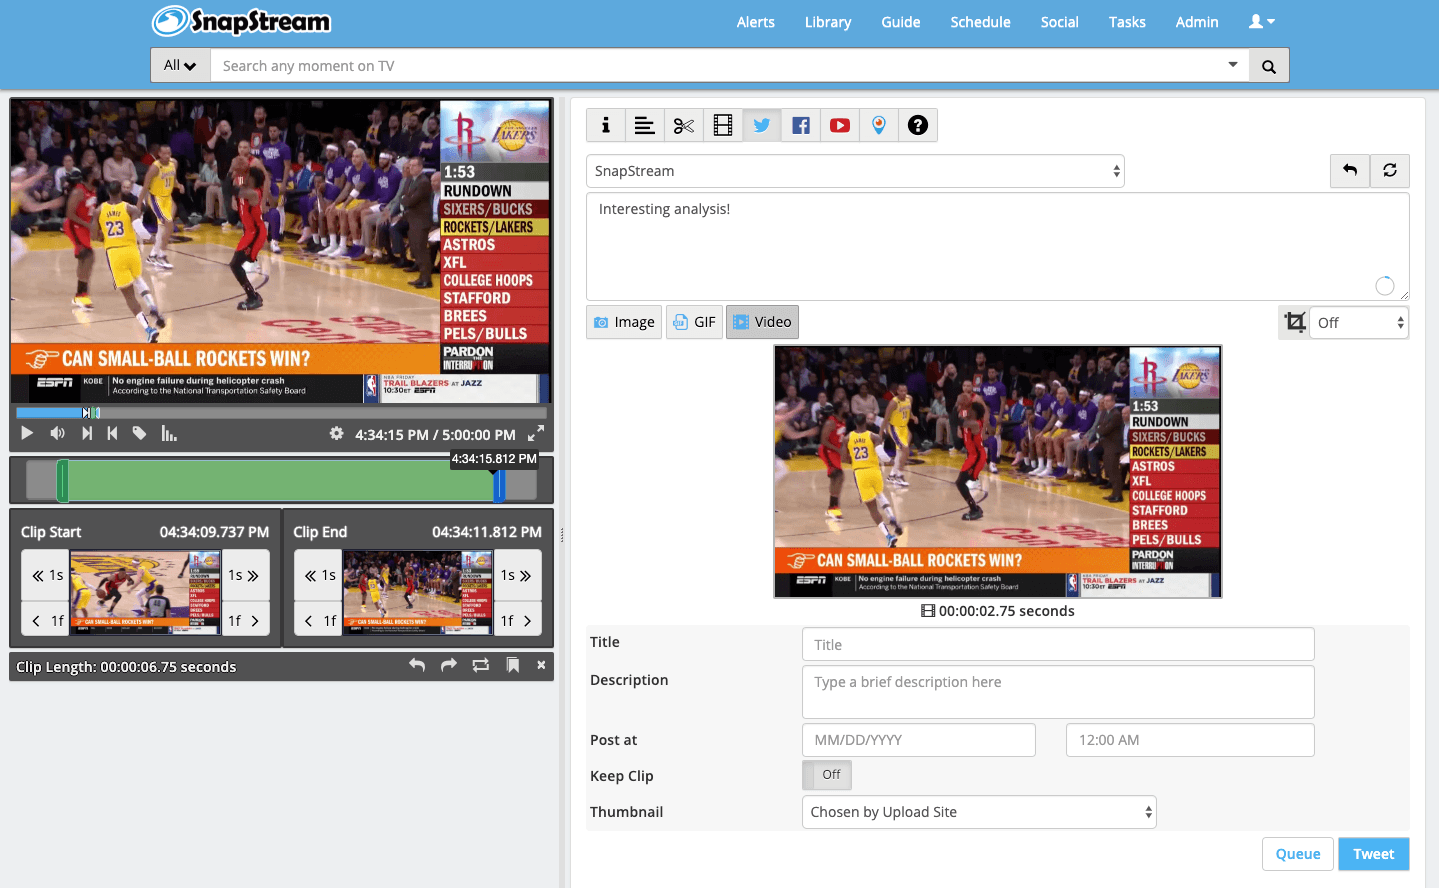 snapstream-ui-snappytv-replacement